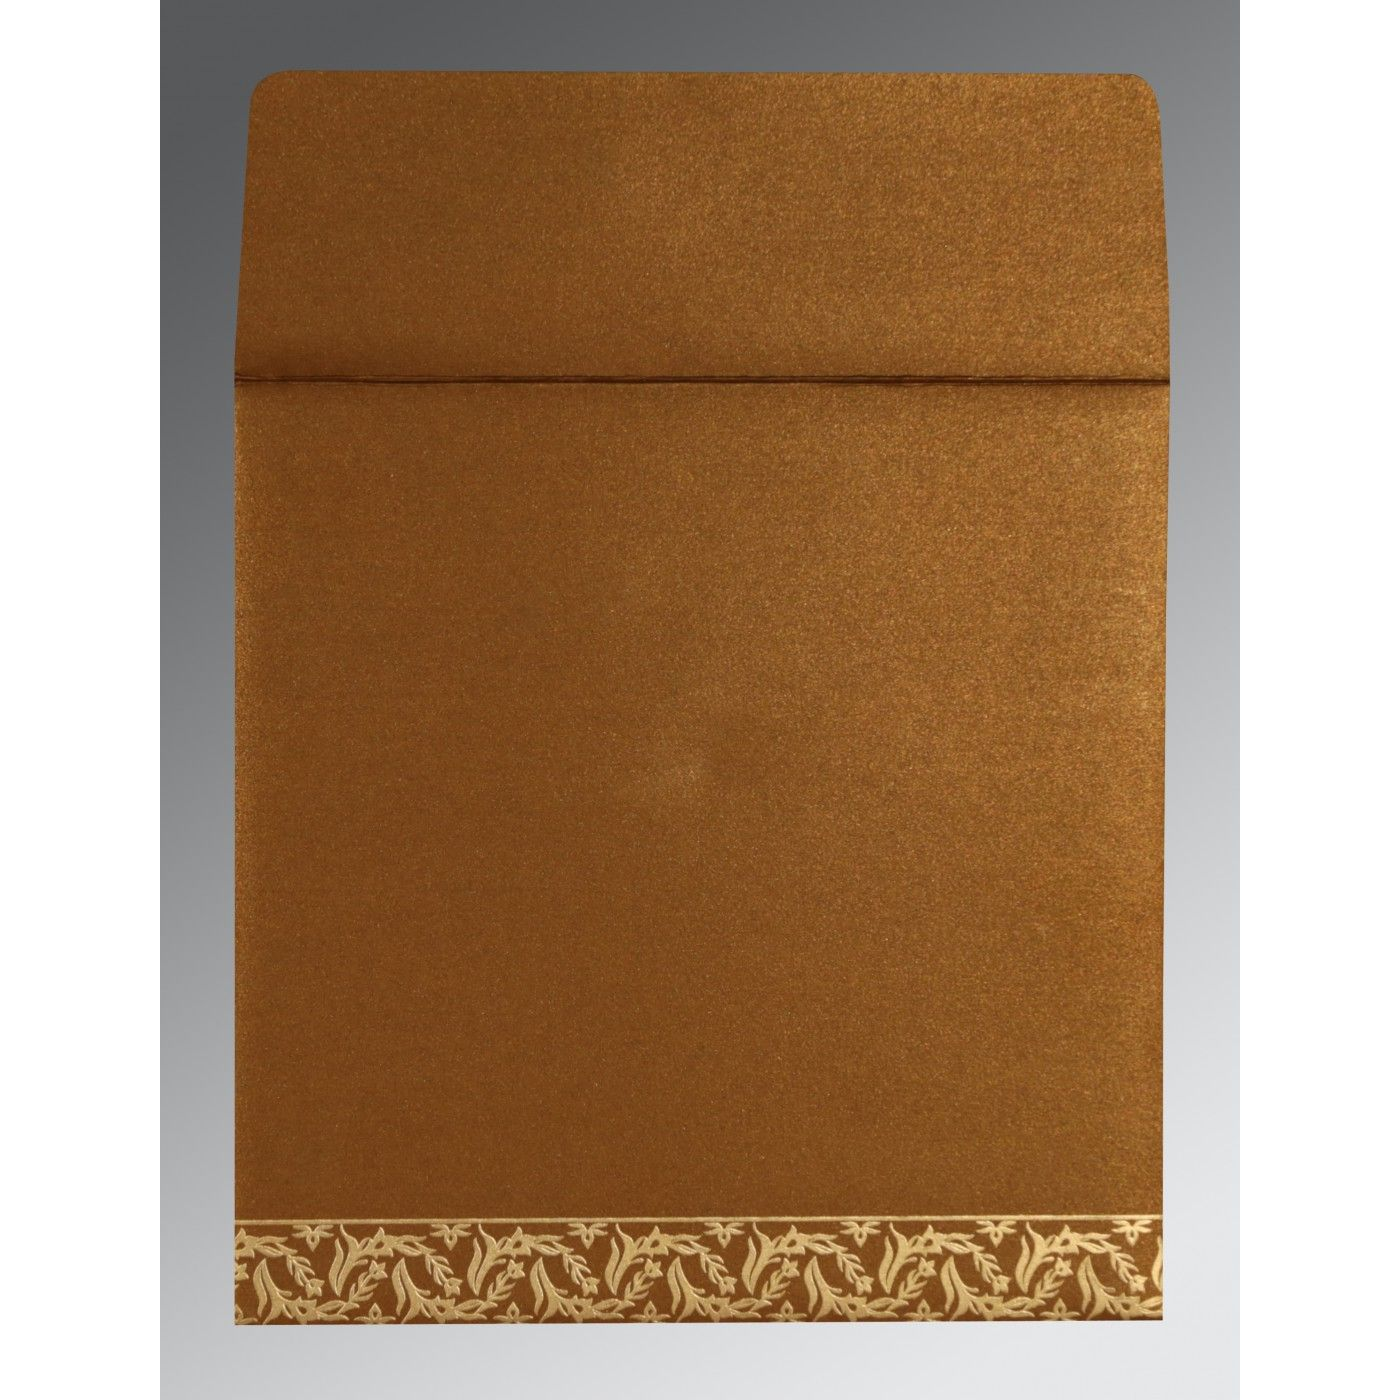 COPPER SHIMMERY UNIQUE THEMED - FOIL STAMPED WEDDING CARD : CRU-8249F - IndianWeddingCards